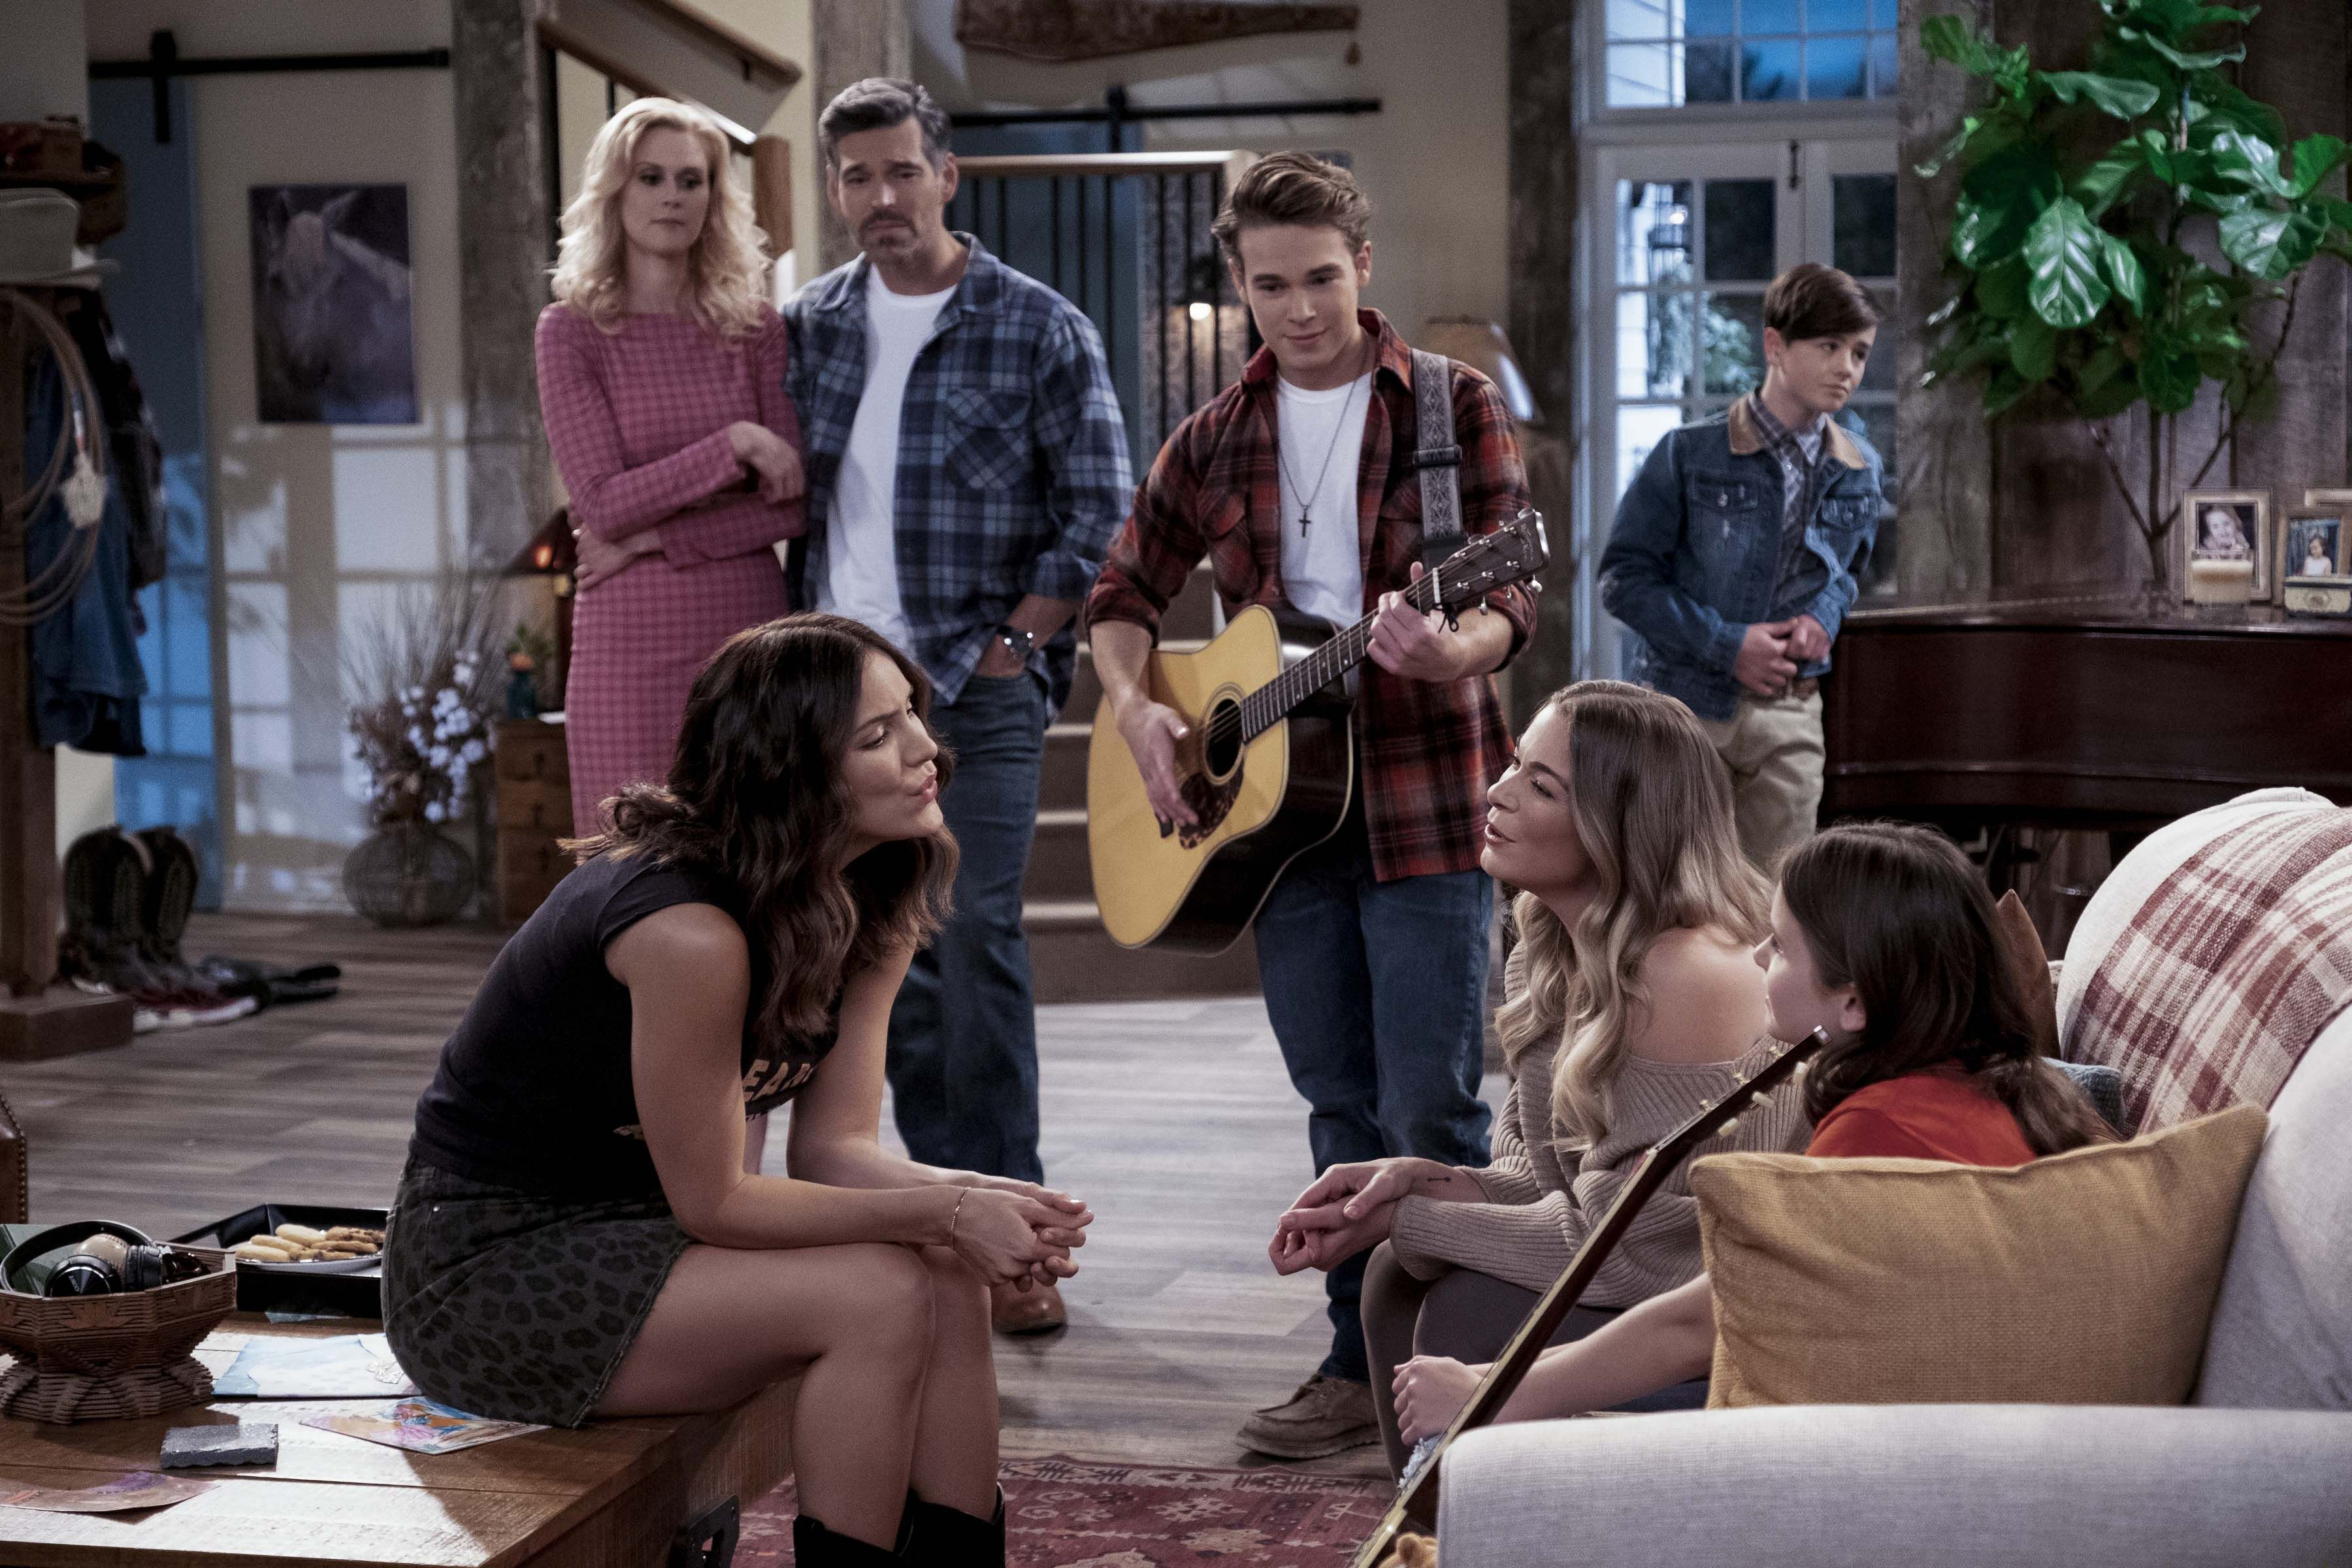 My family pies s2 e2 casrt Country Comfort Cast Who Are The Characters In Netflix S Country Comfort